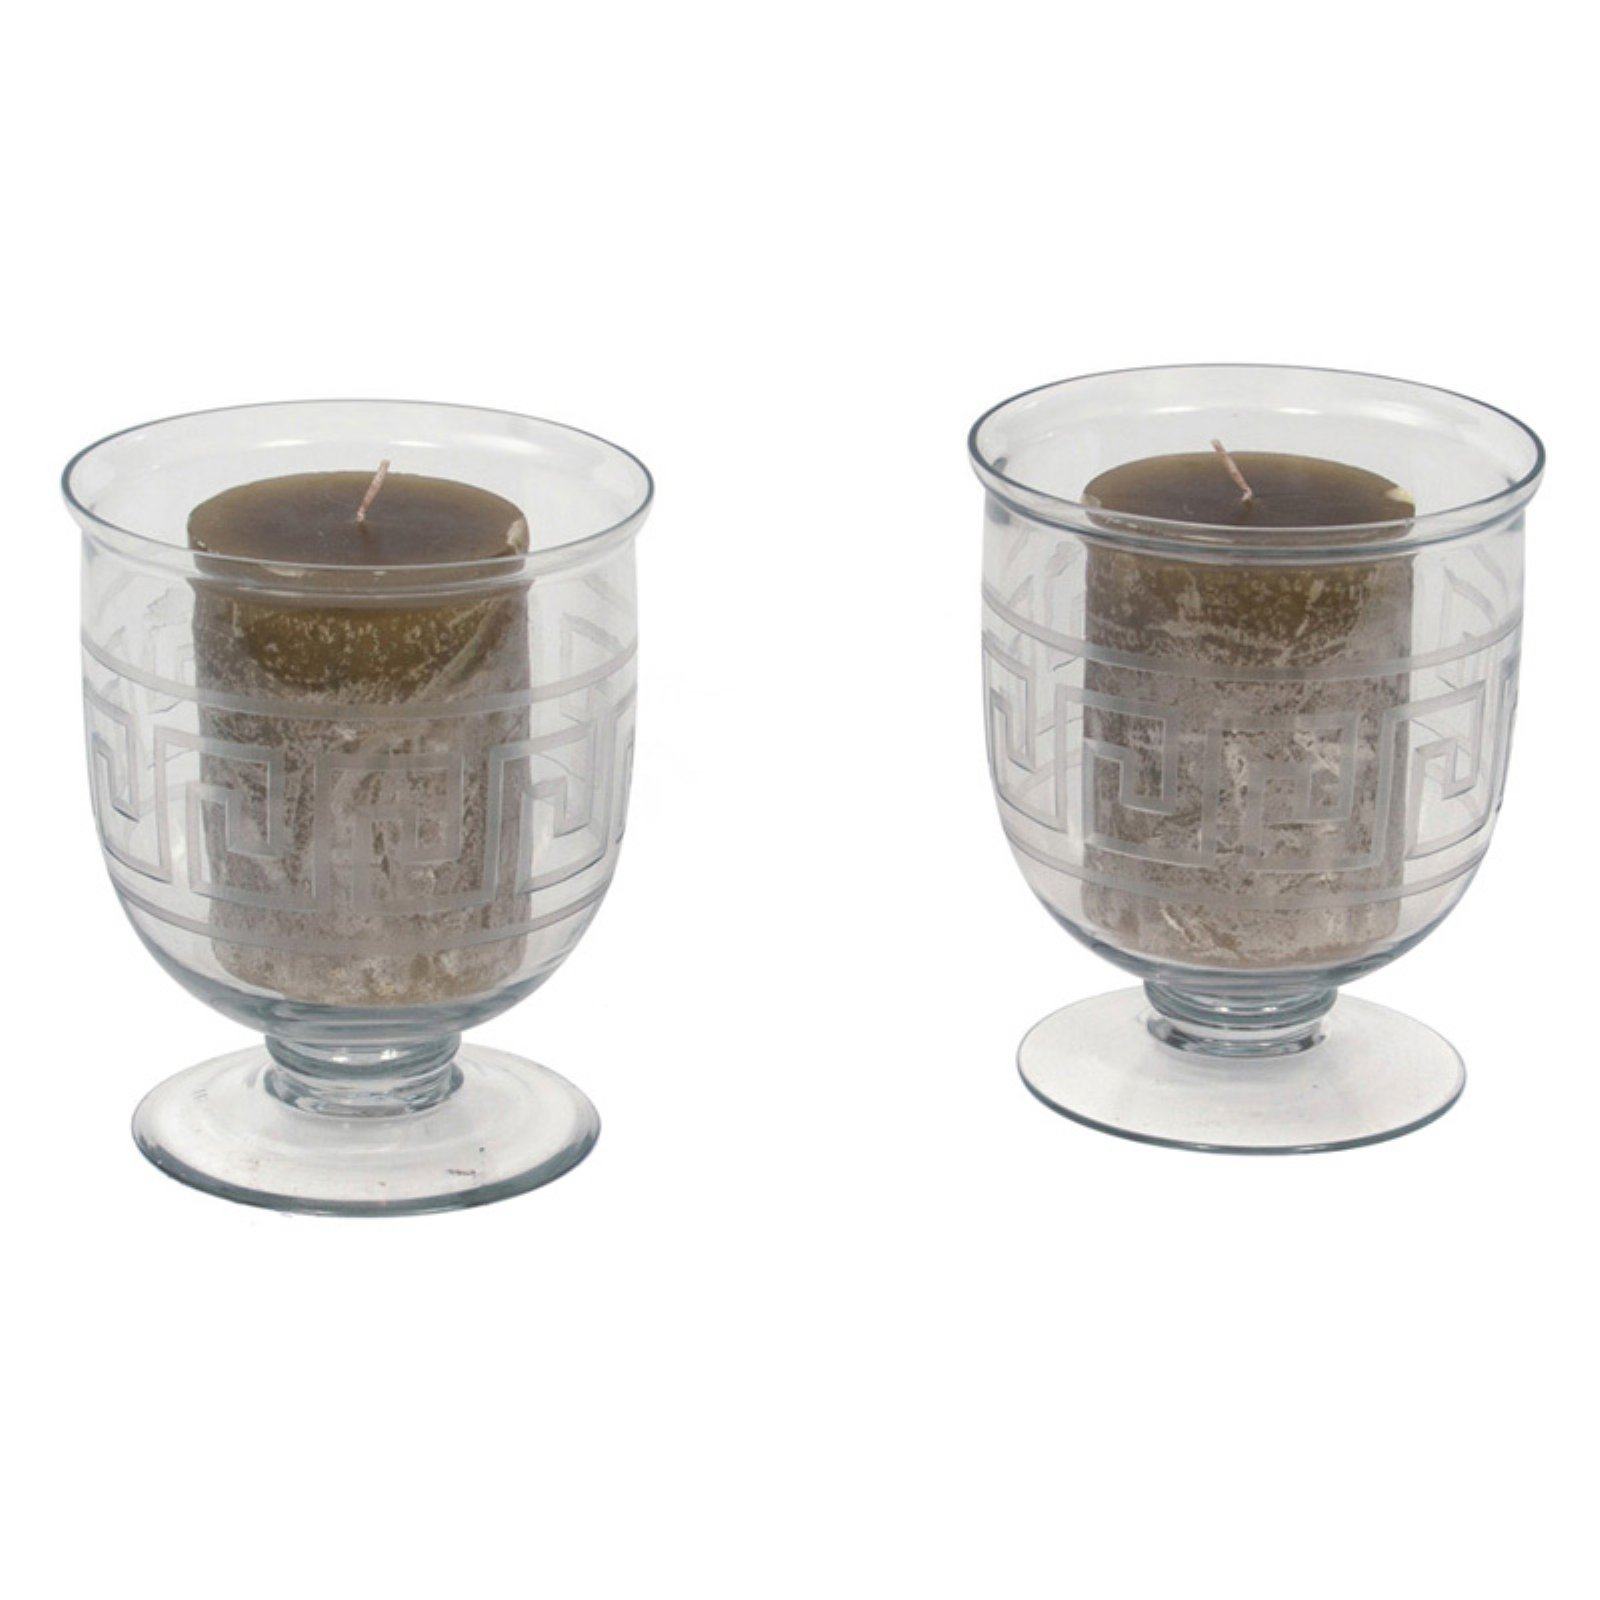 Hip Vintage Mykonos Hurricane Candle Holder - Set of 2